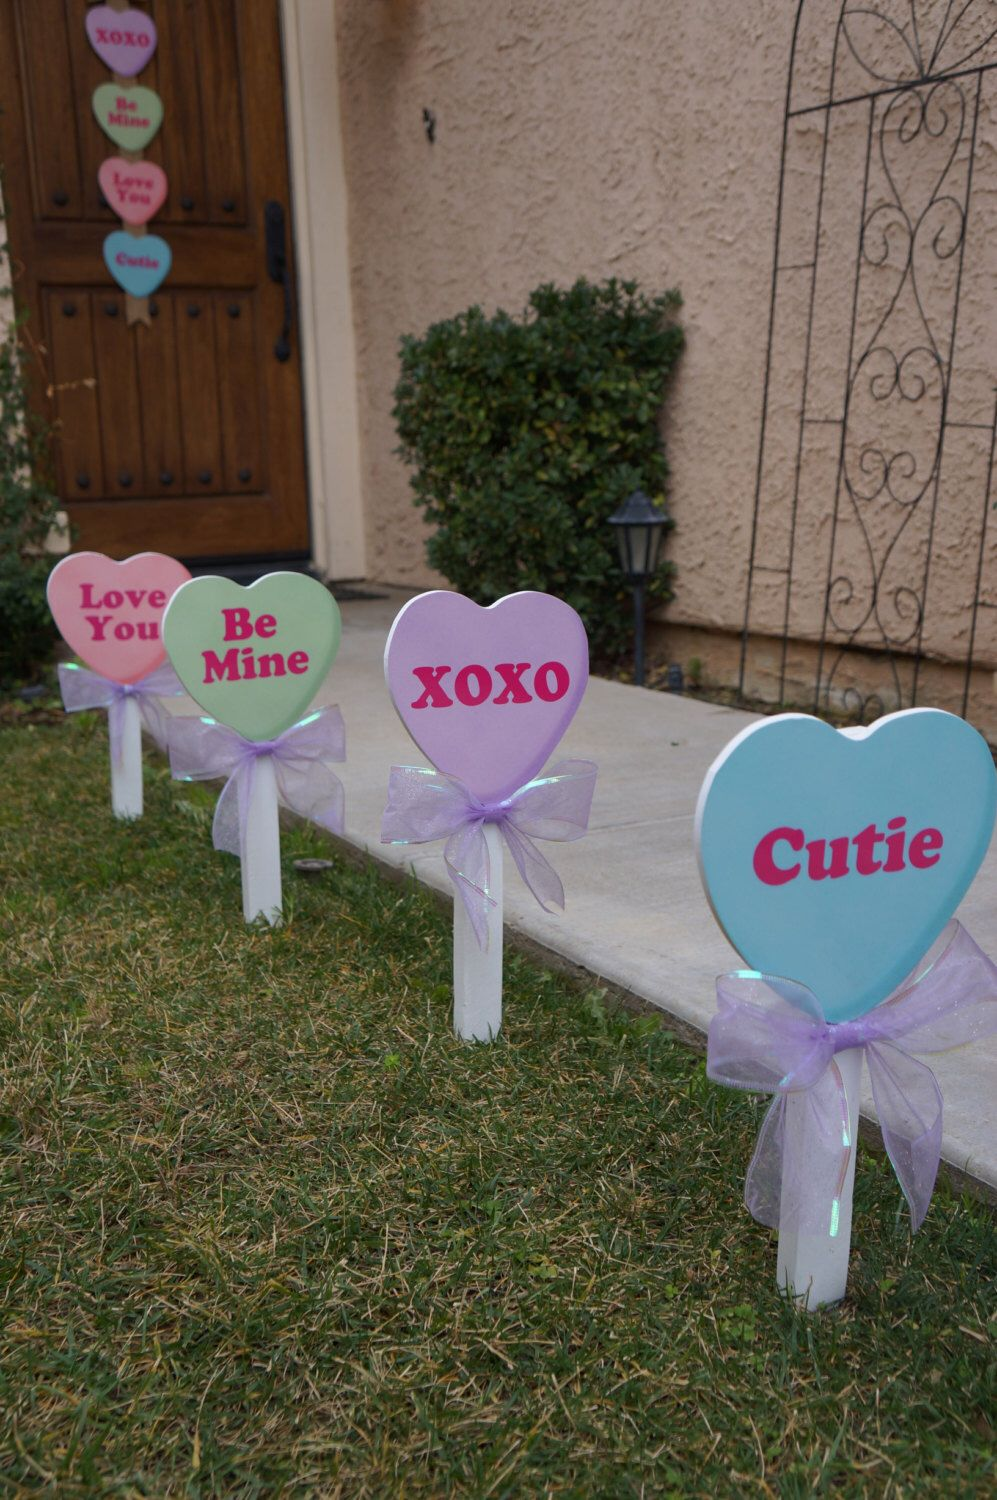 Valentine's Day is just around the corner. Check out these DIY Valentine's yard decor ideas. They will be the talk of the neighborhood.